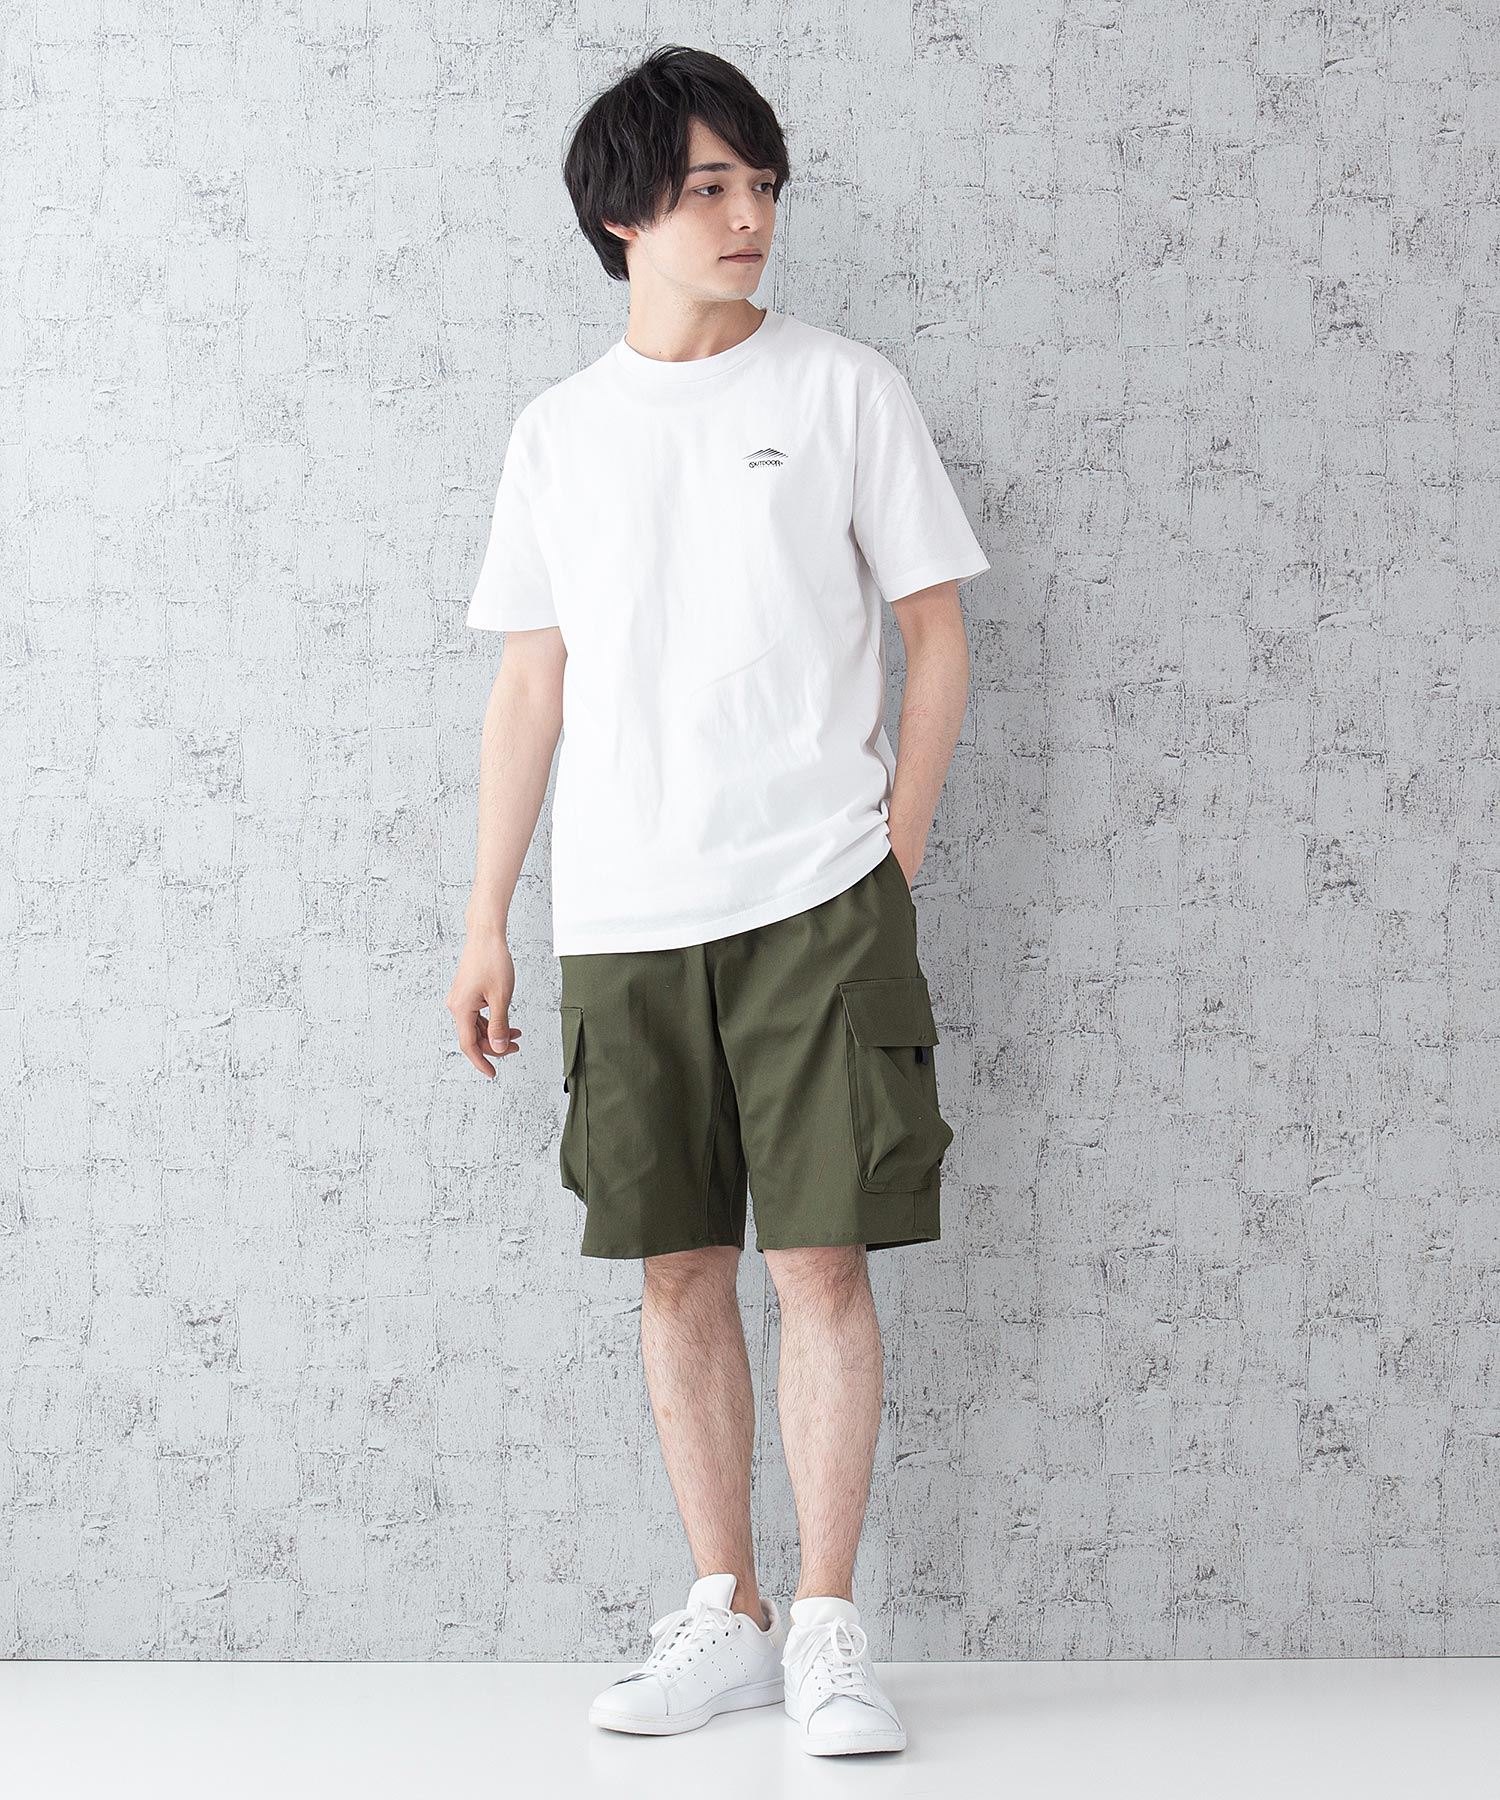 OUTDOOR PRODUCTS APPAREL 防シワポンチボタンカーディガン